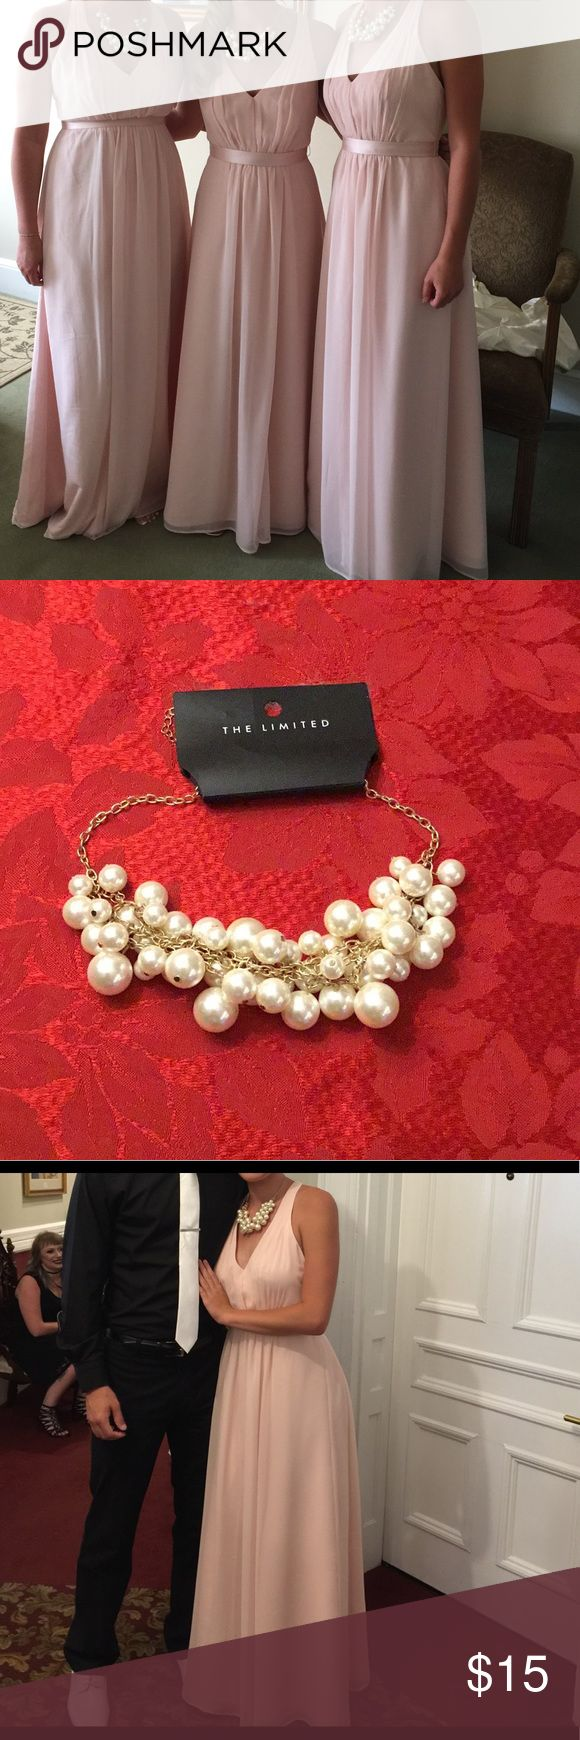 Pearl necklace Beautiful chunky pearl necklace The Limited Jewelry Necklaces